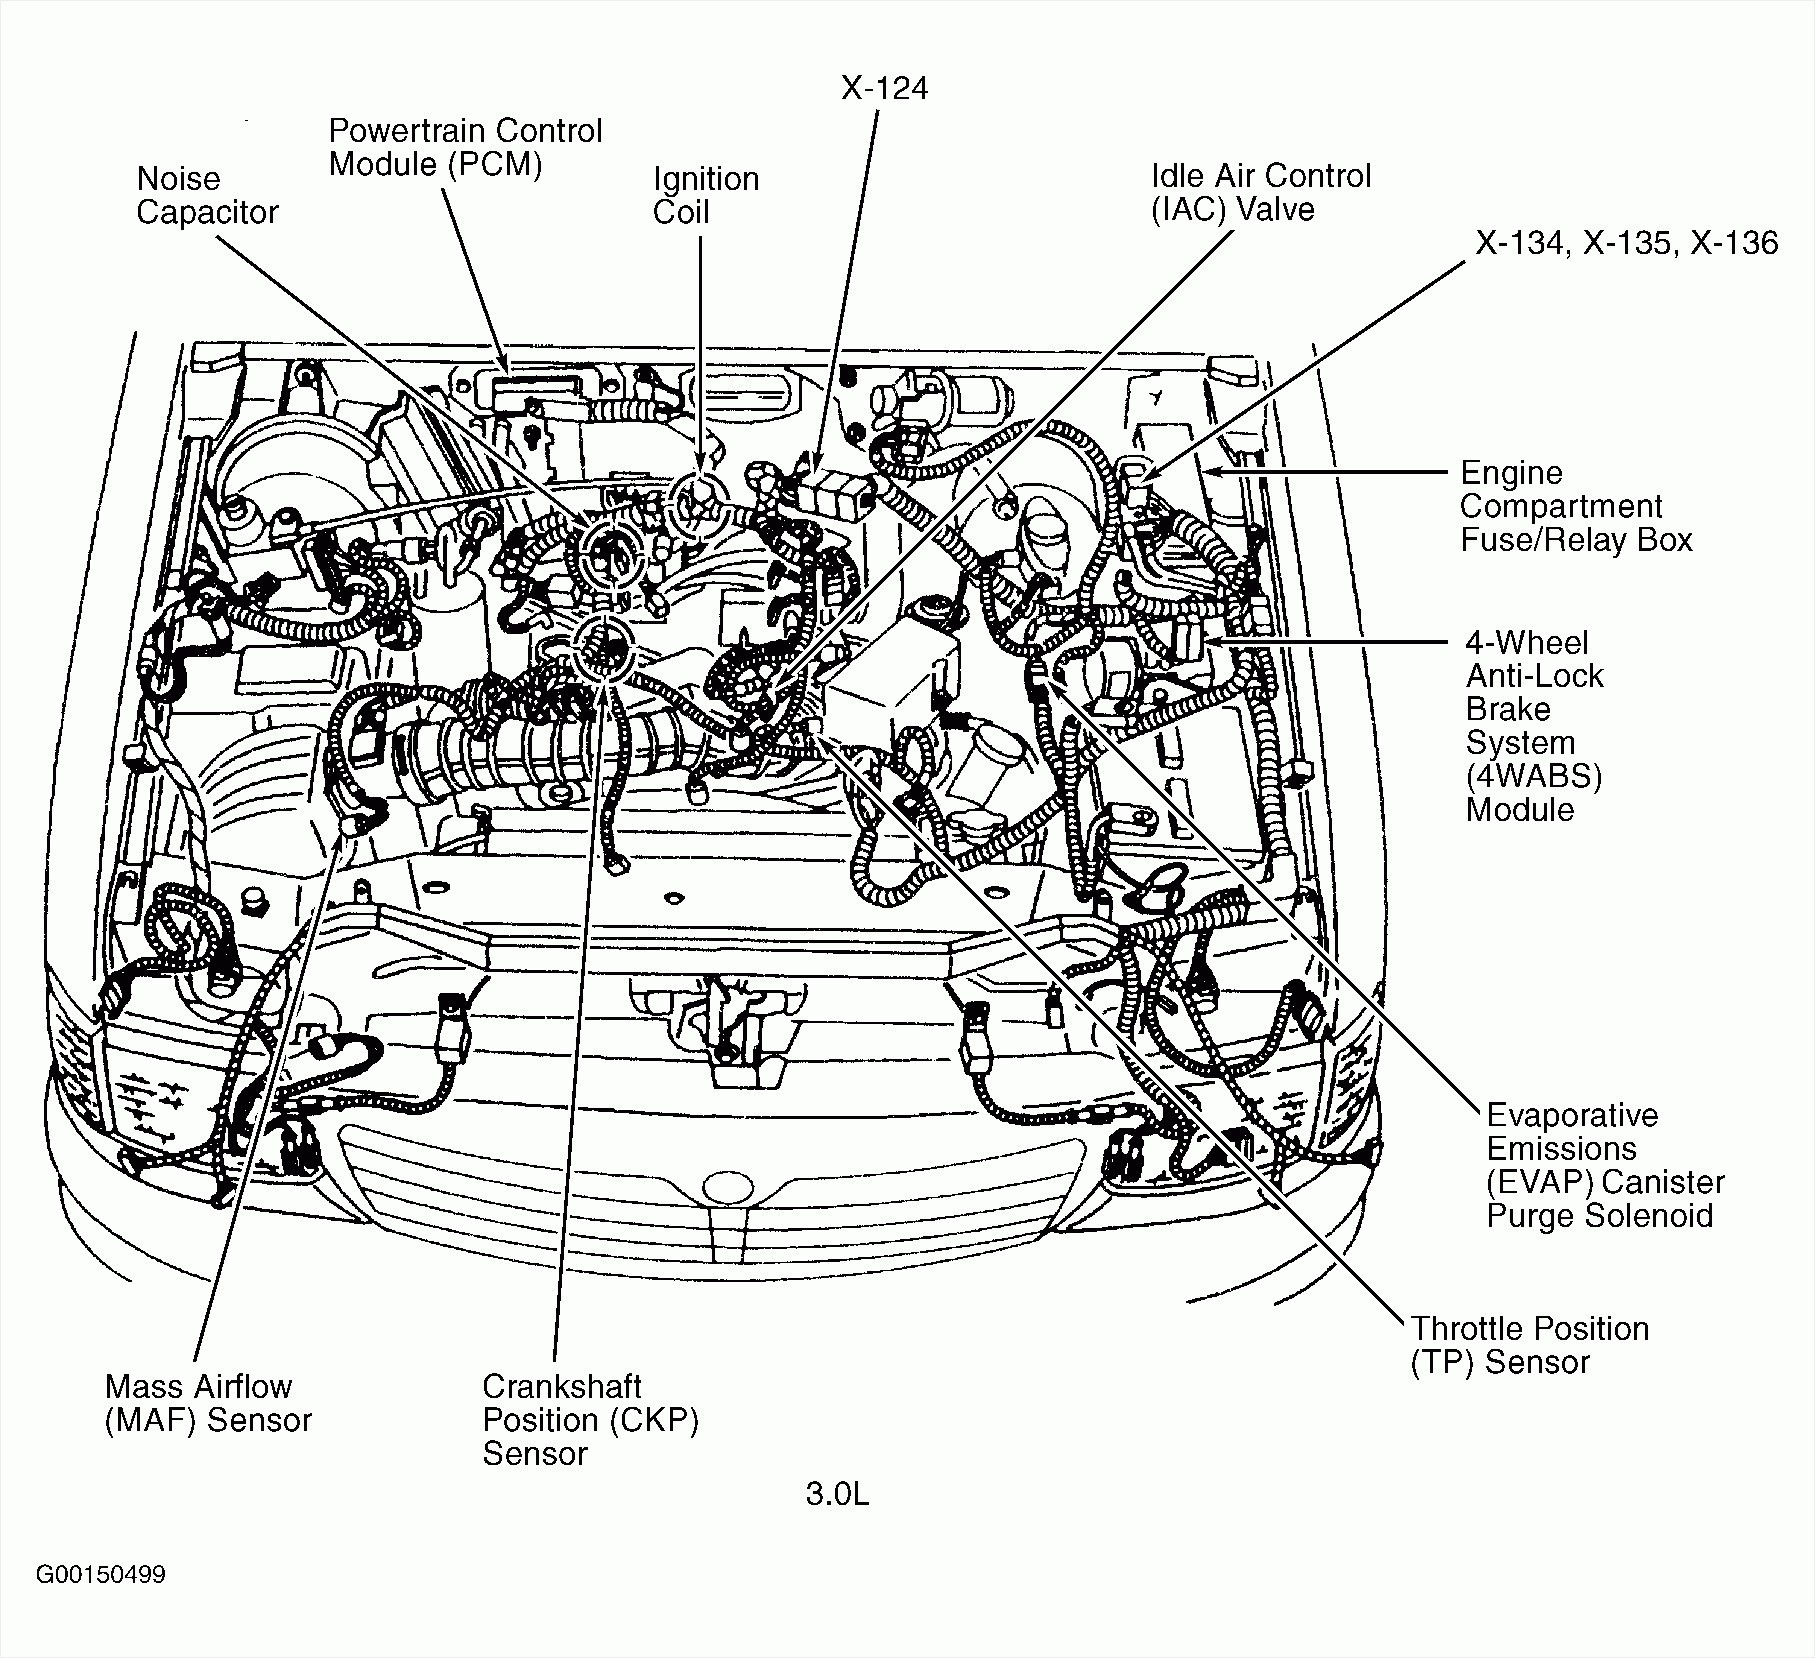 Mx Engine Bay Diagram Layout For Mazda Engine Wiring Diagrams E A Of Mx Engine Bay Diagram